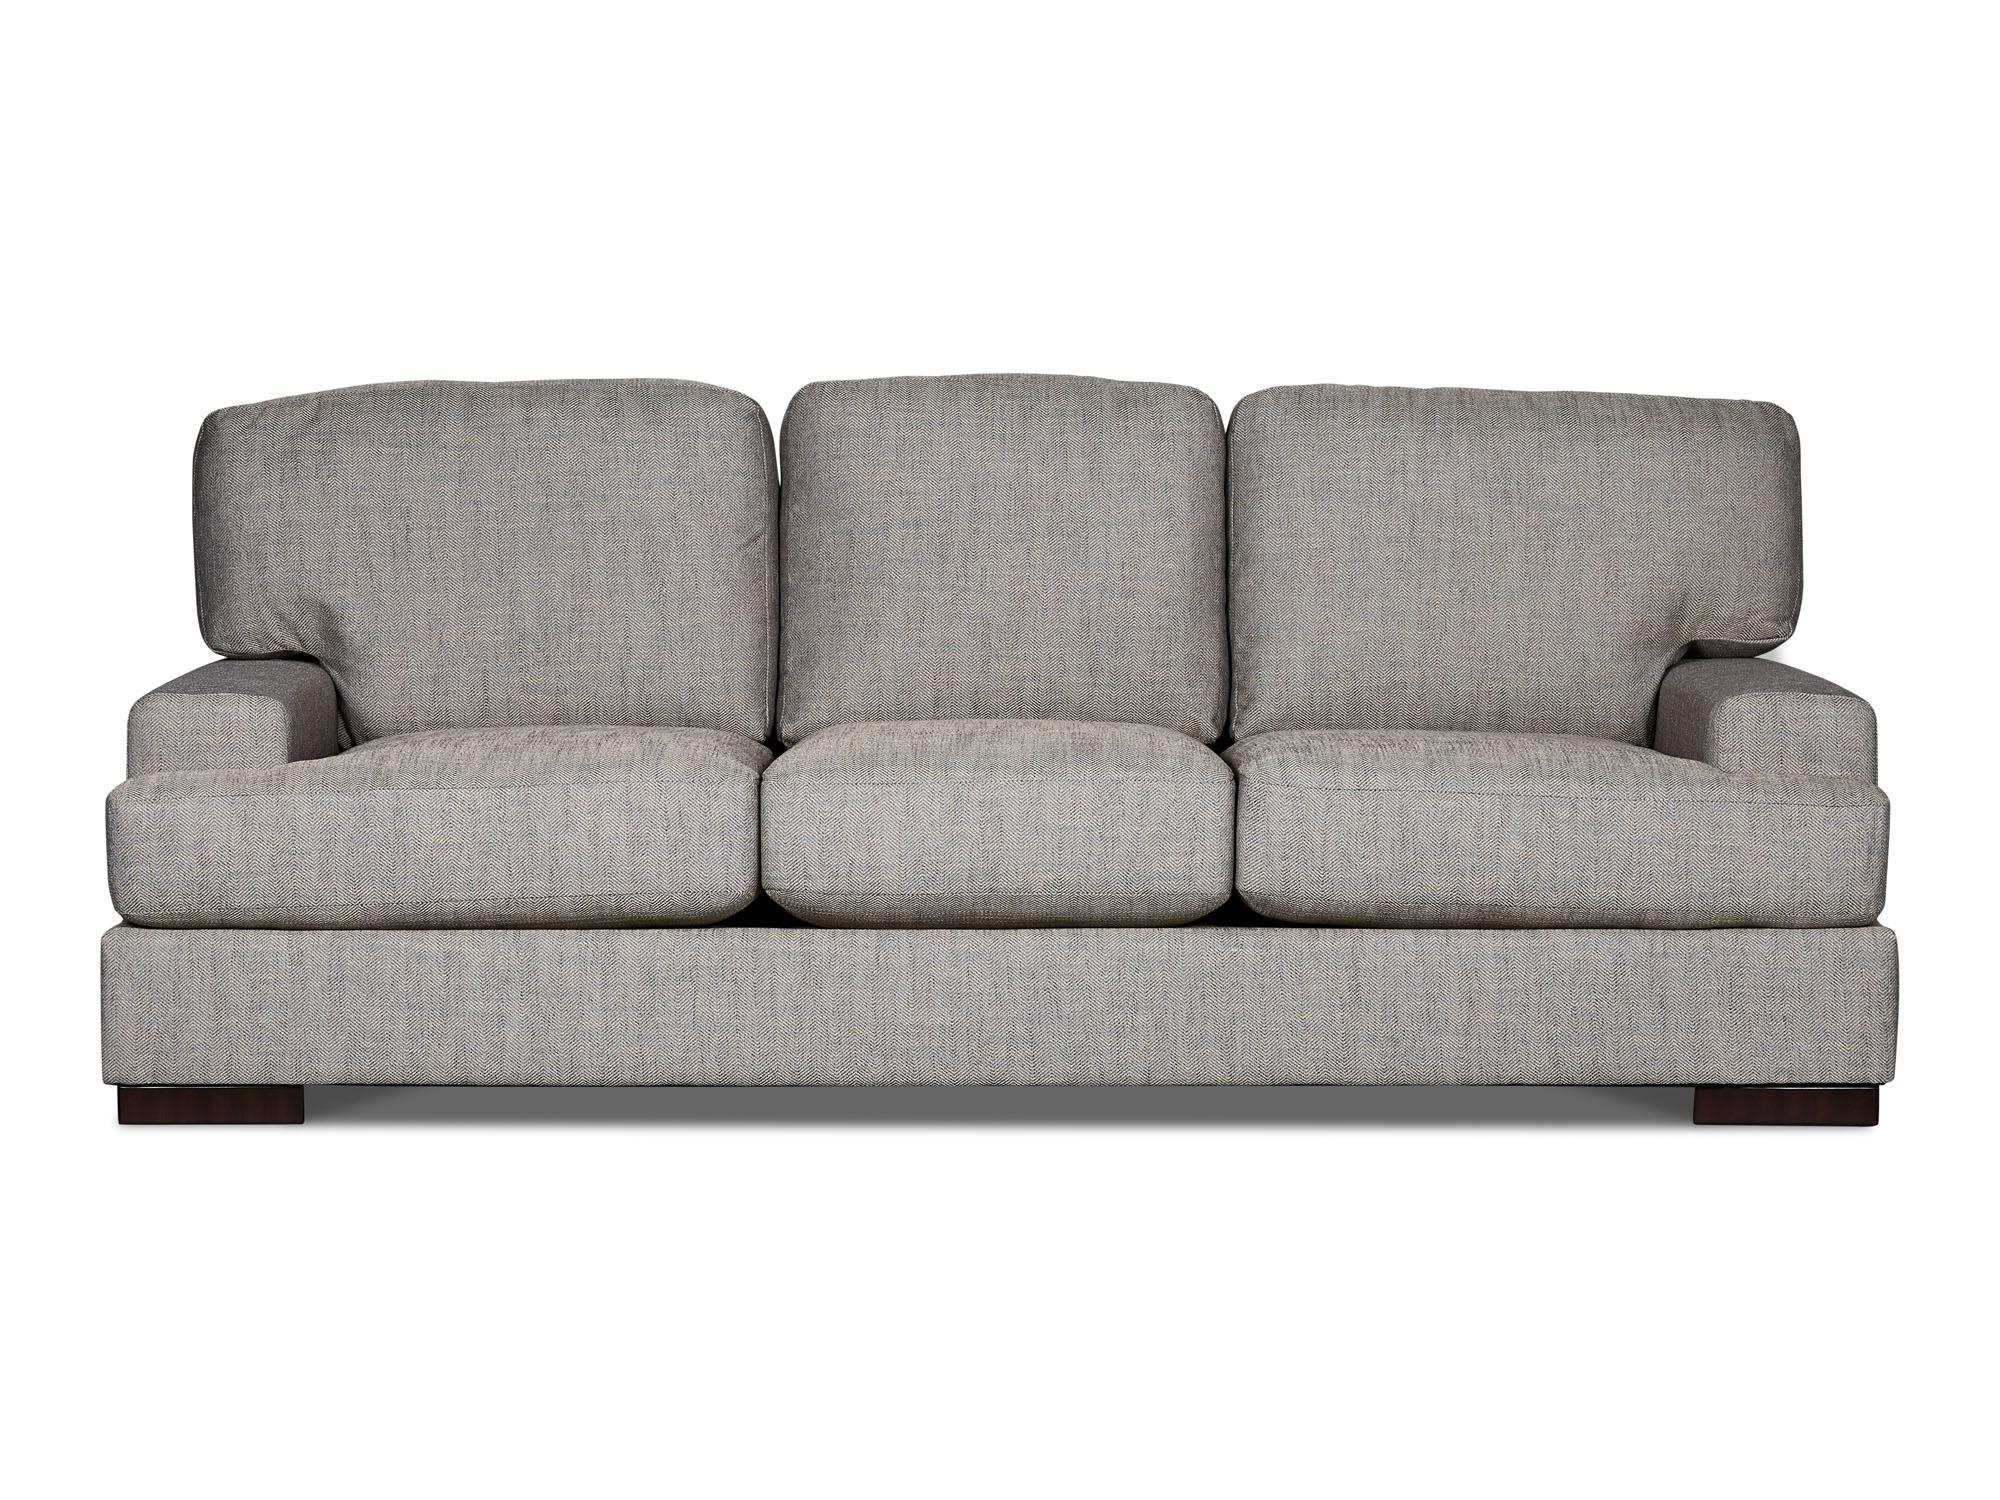 Sofas : Fabulous Single Seater Sofa Designs Single Chair Bed One Regarding Cushion Sofa Beds (Image 21 of 23)